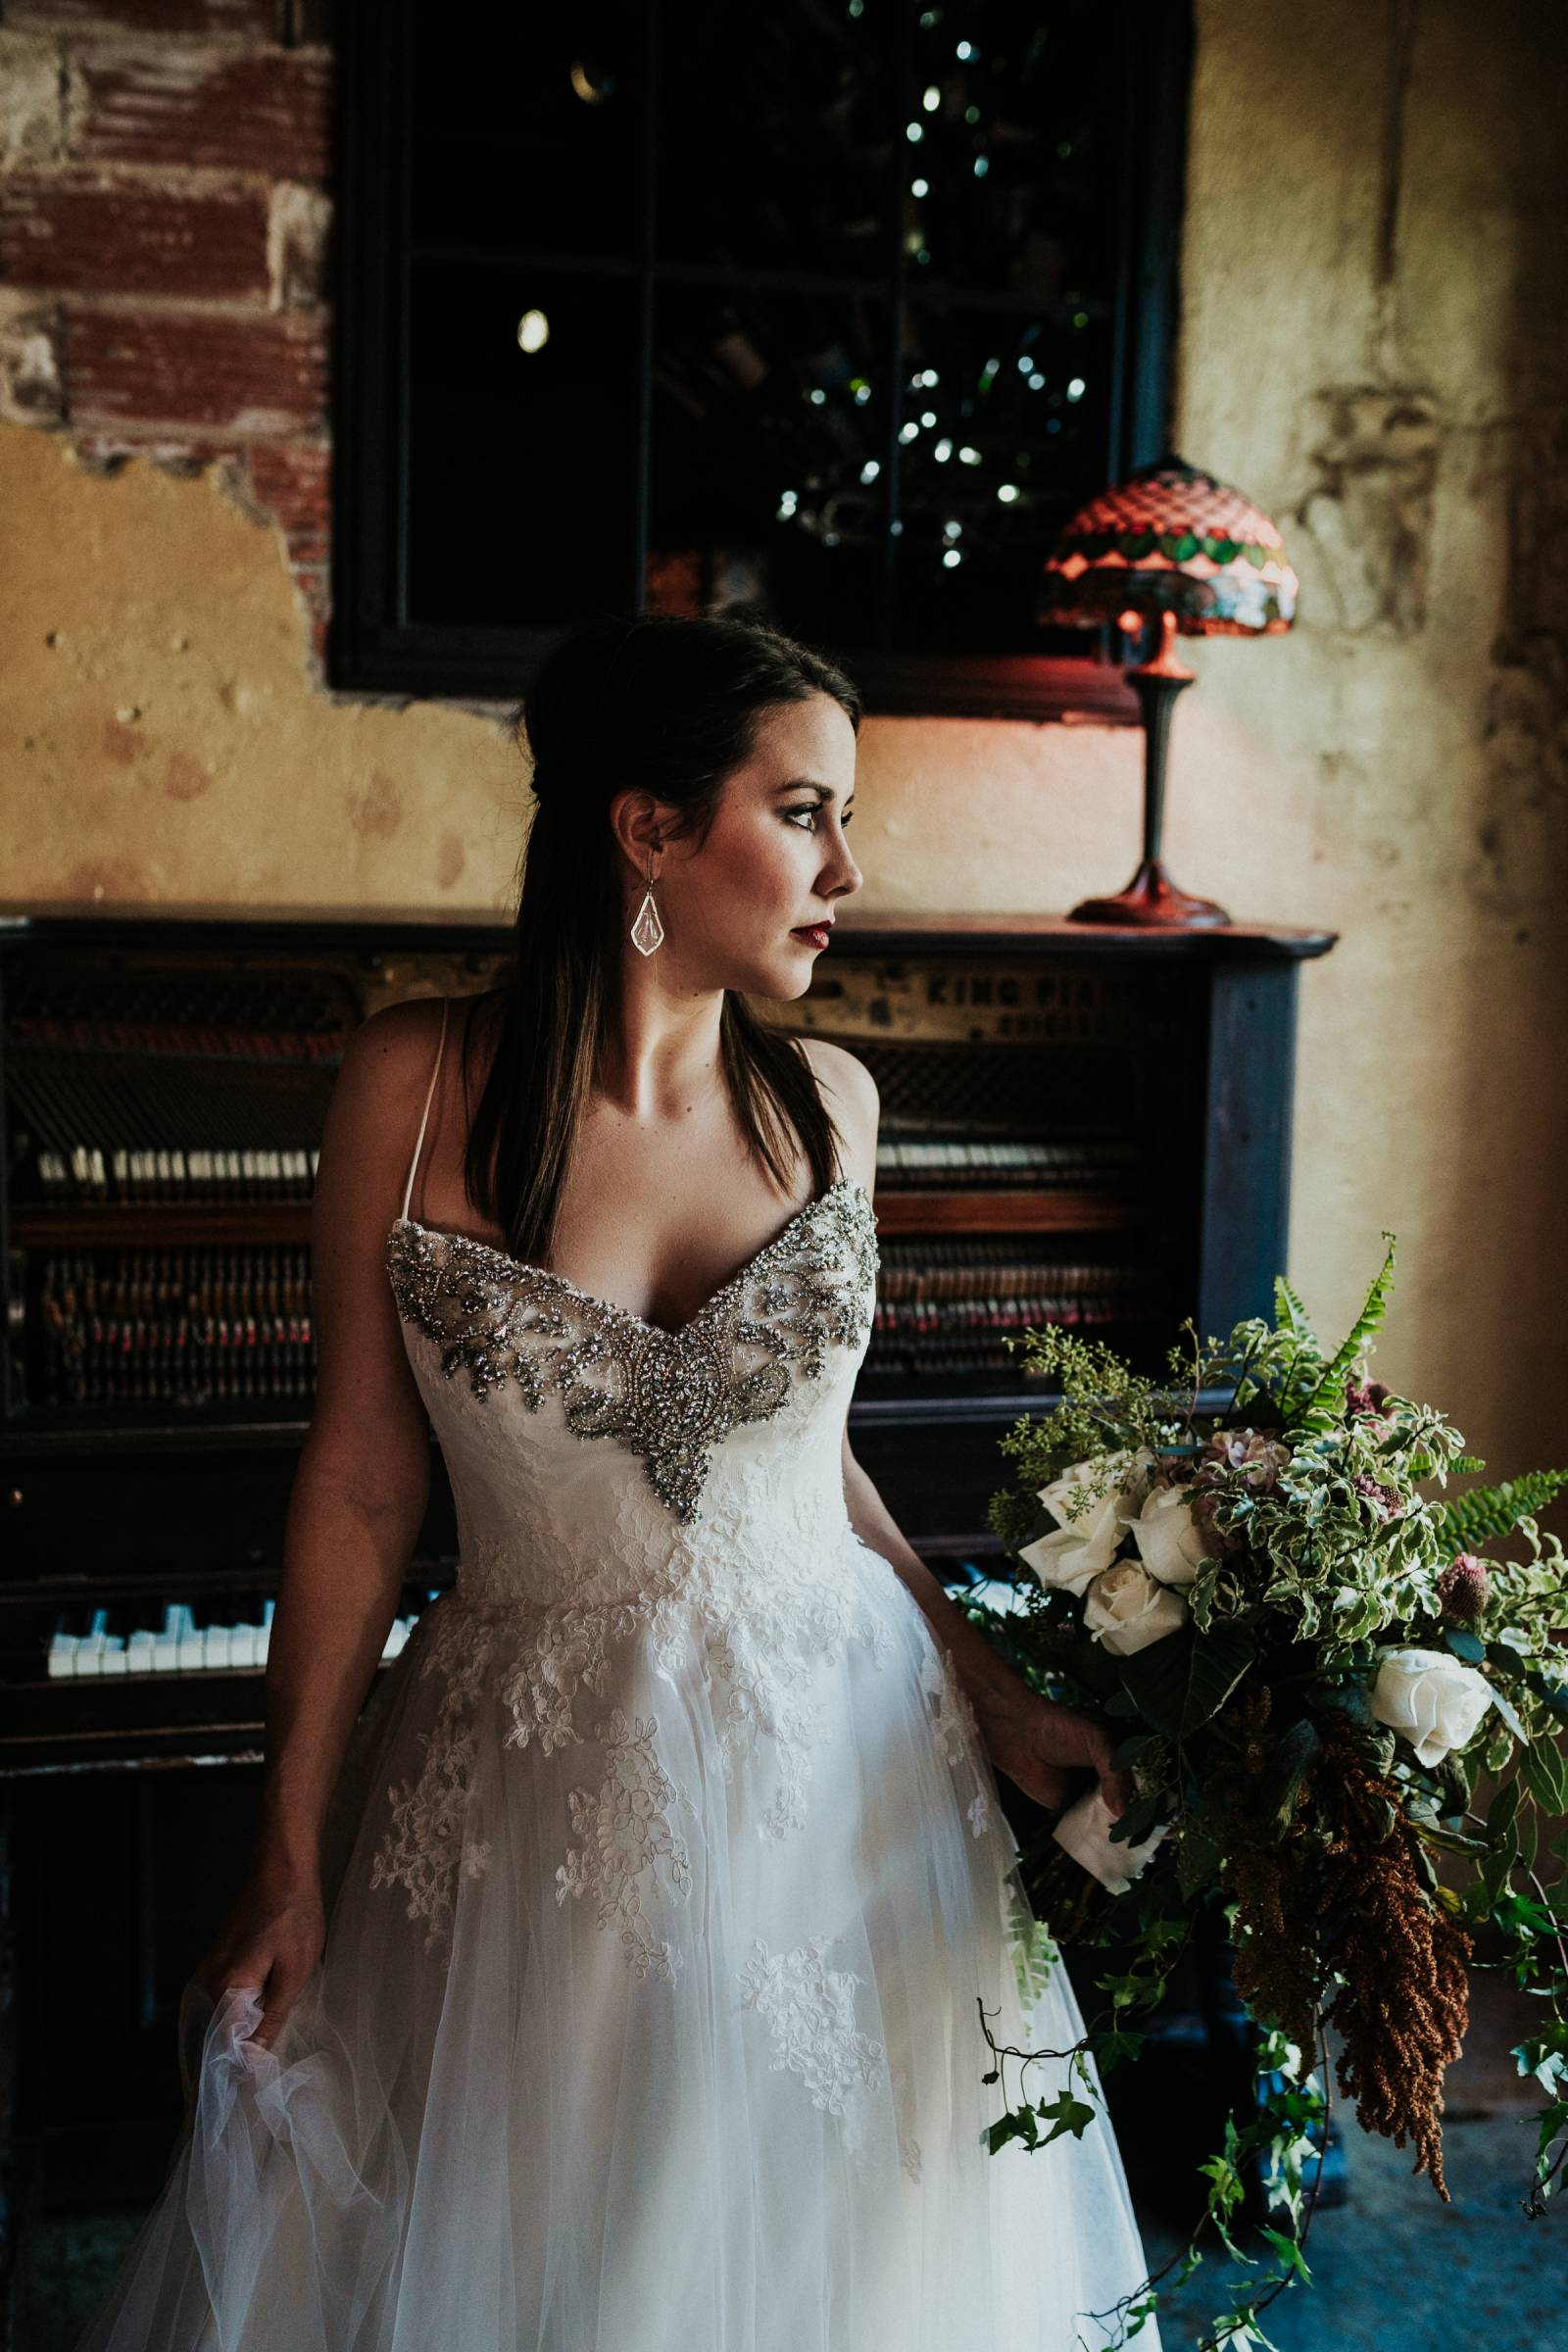 Jewel encrusted bodice on lace wedding dress